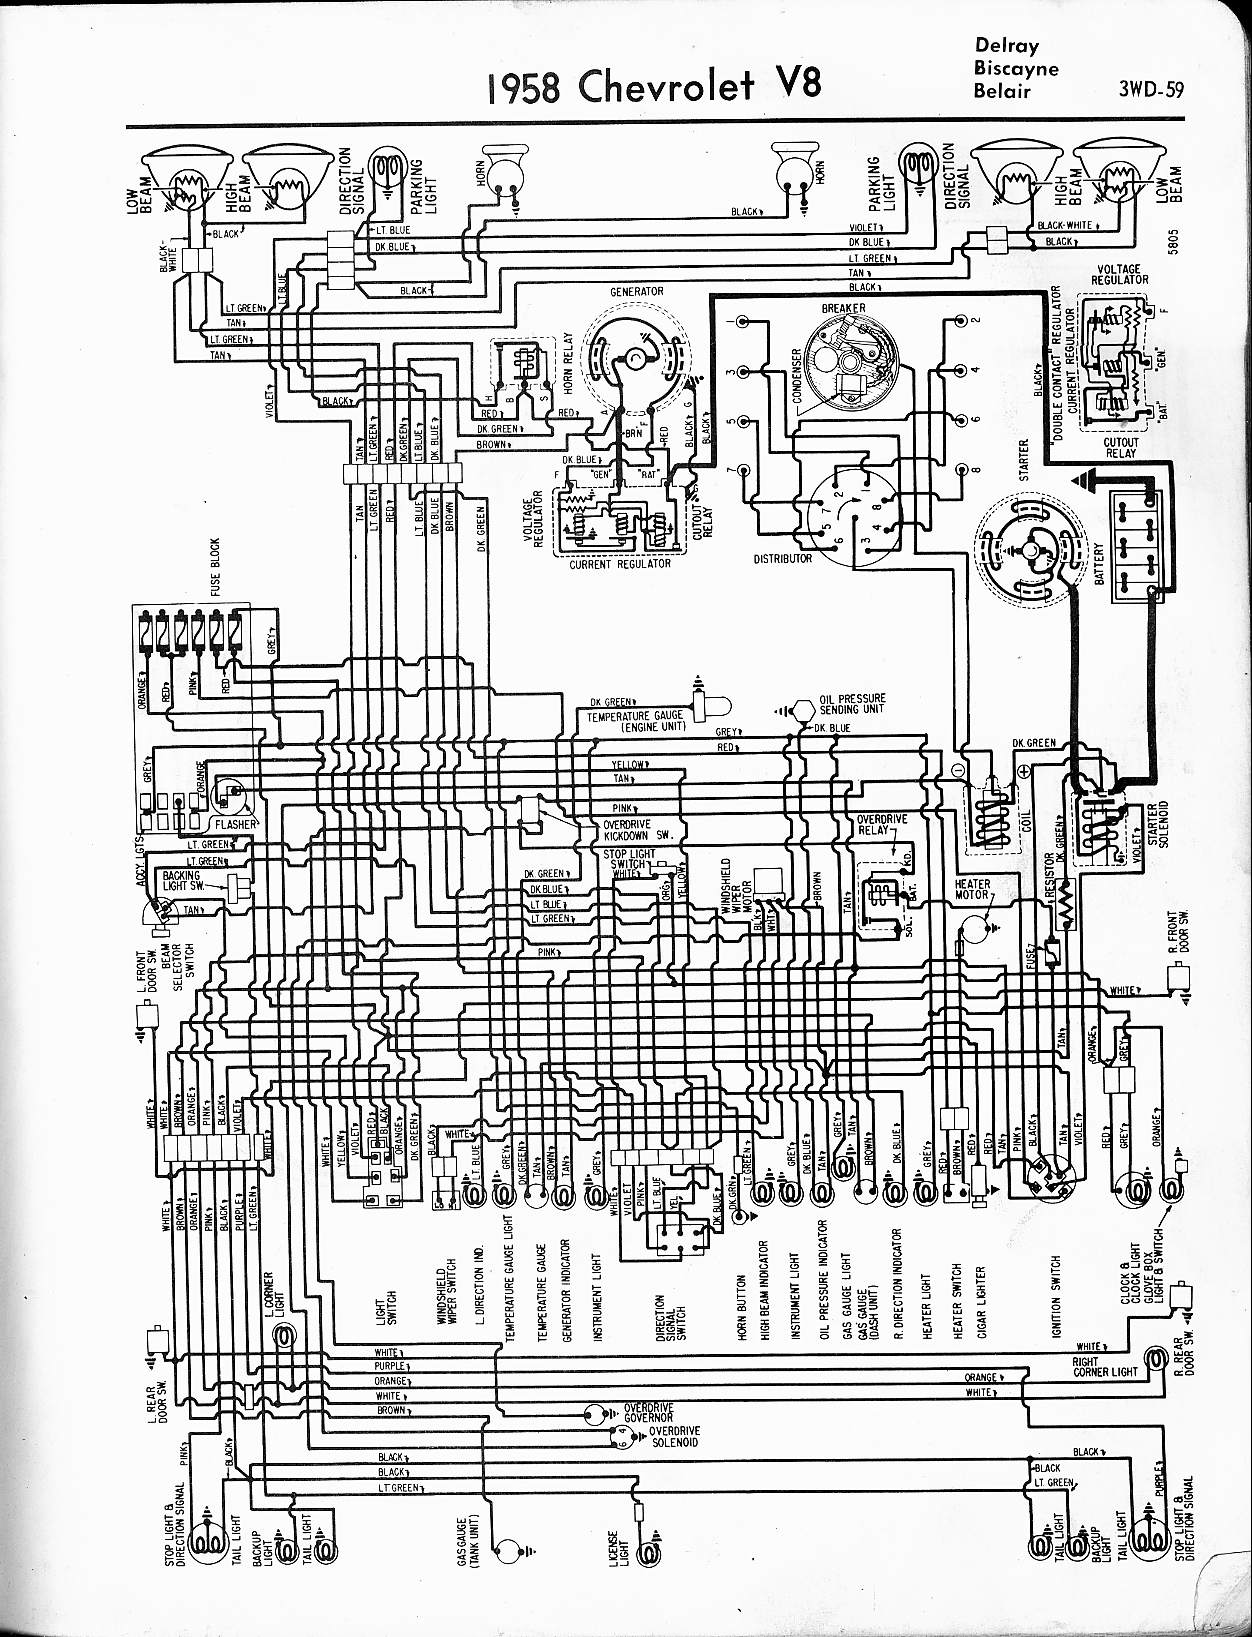 Chevy wiring schematics on 57 65 chevy wiring diagrams Chevy Wiring Color Codes 1990 Chevy 3500 Wiring Diagram